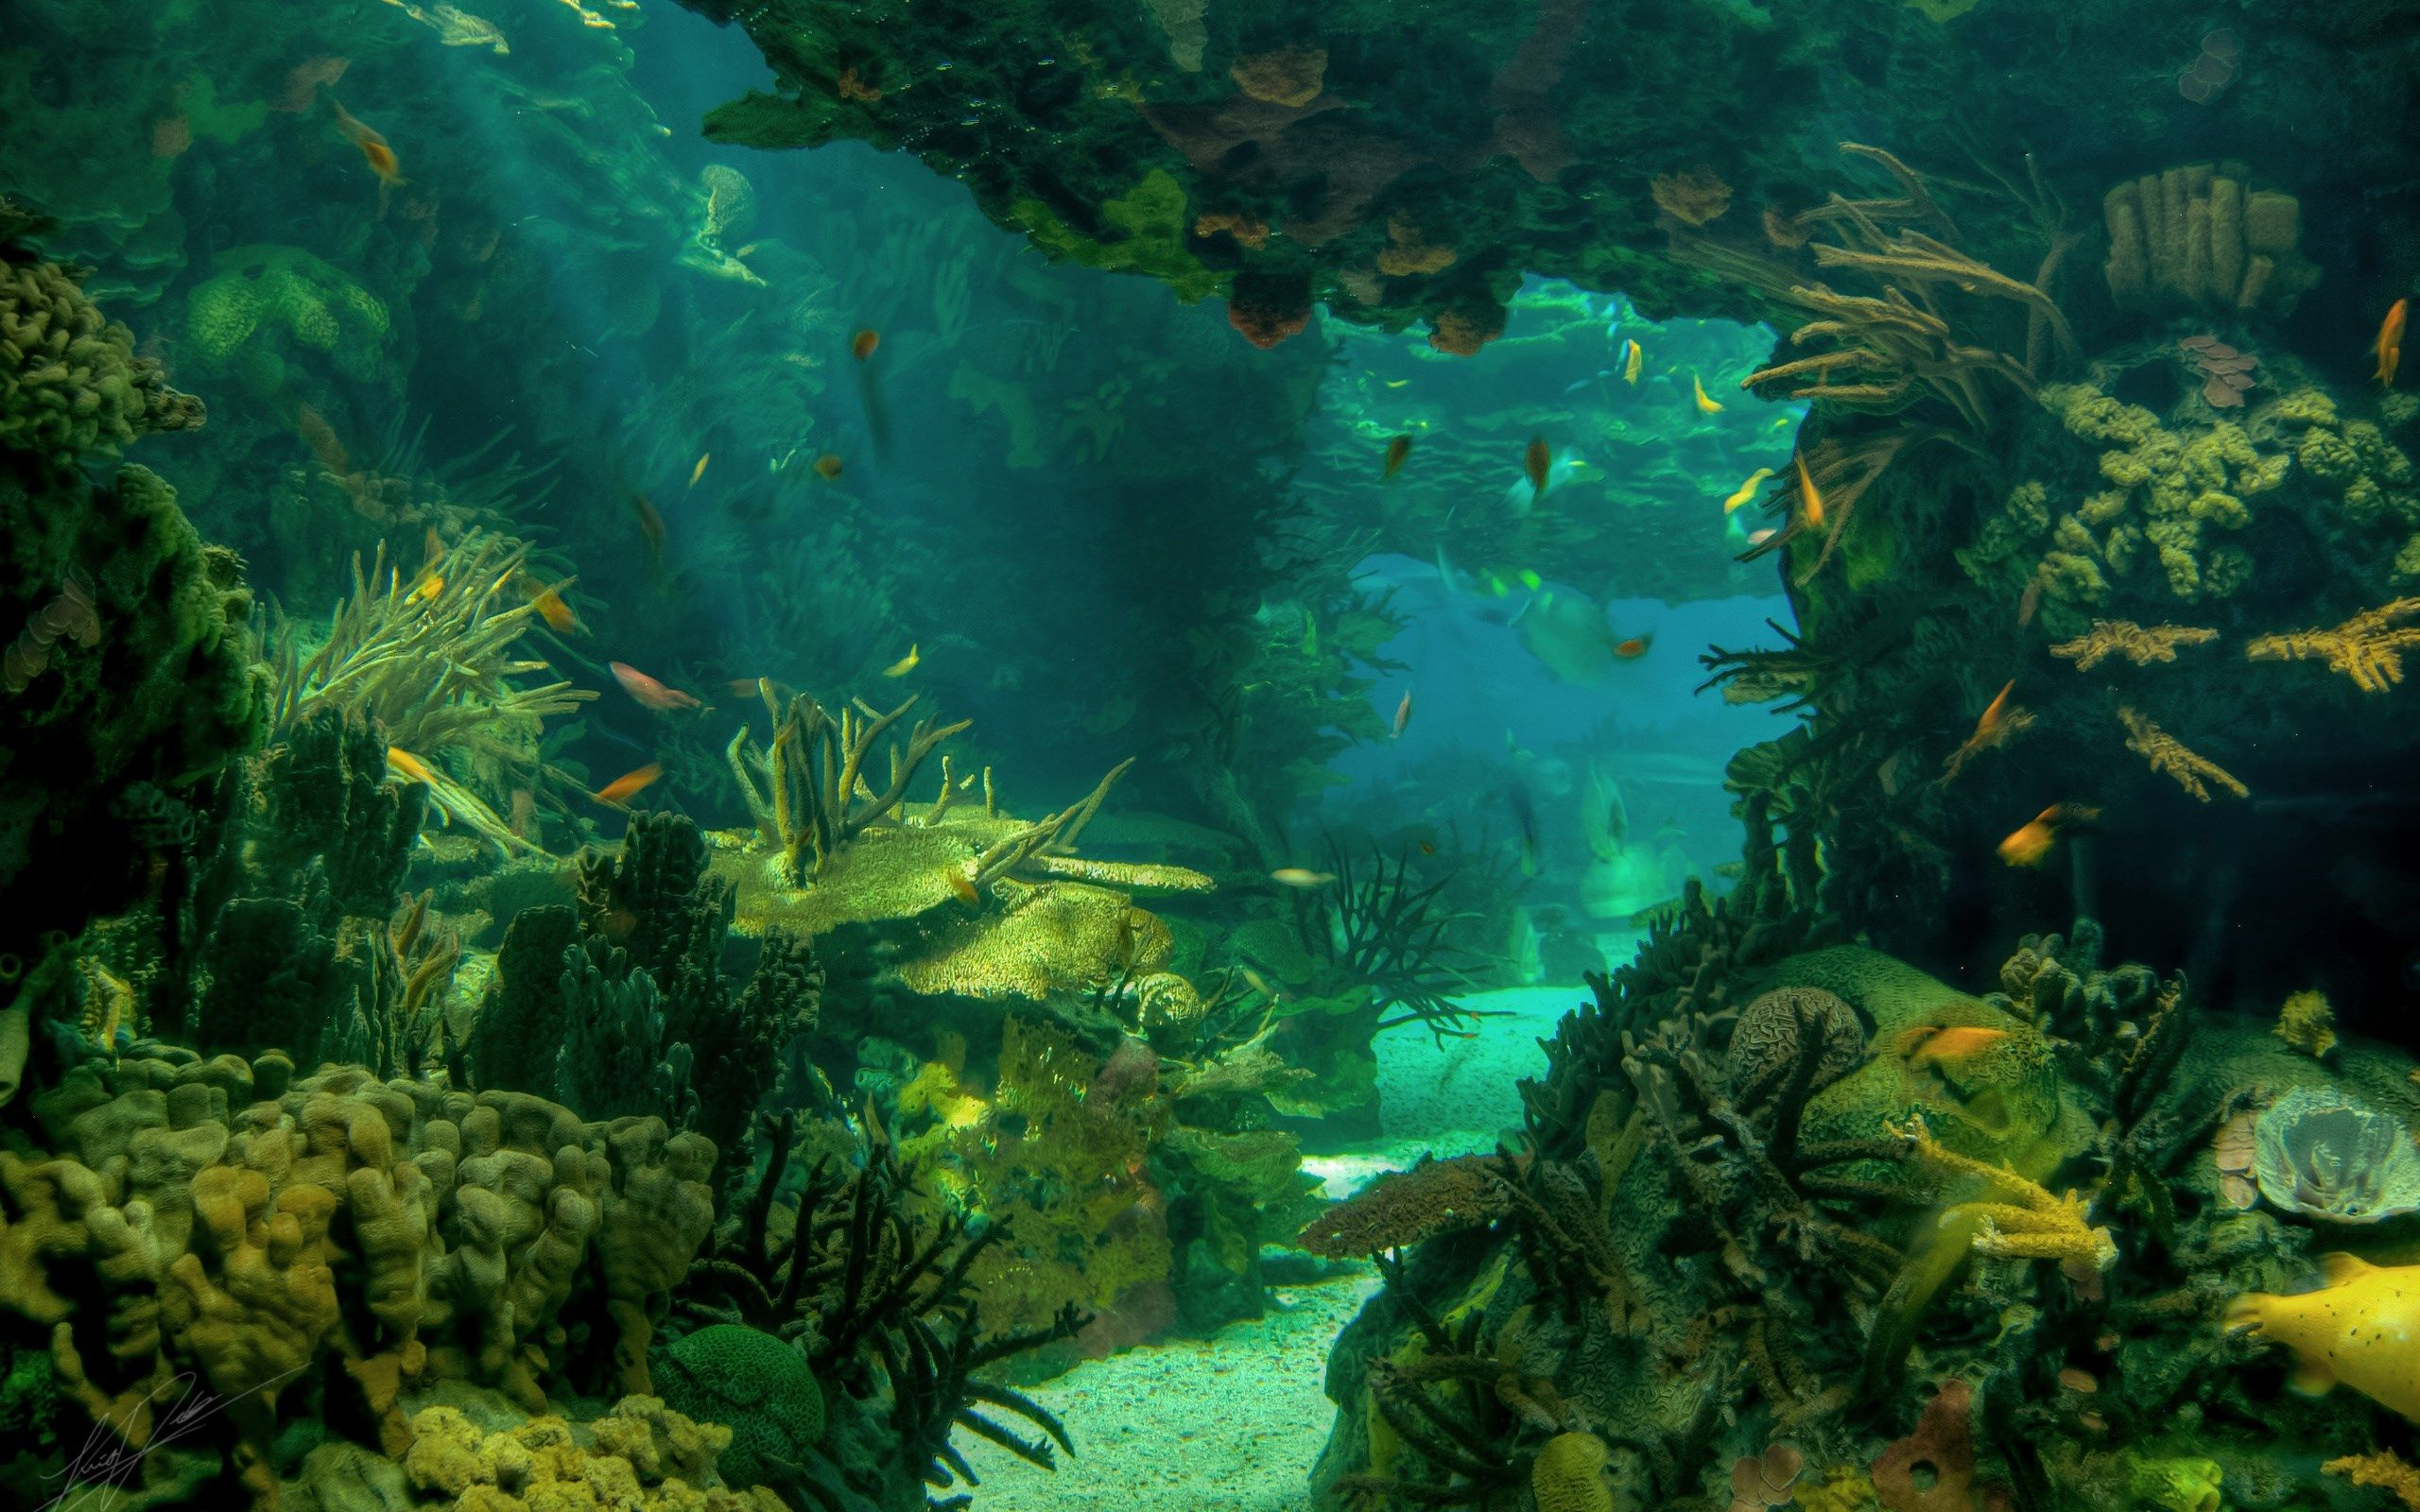 X theme background image - Barlow Brook Underwater Theme Background Images 2560 X 1600 Px